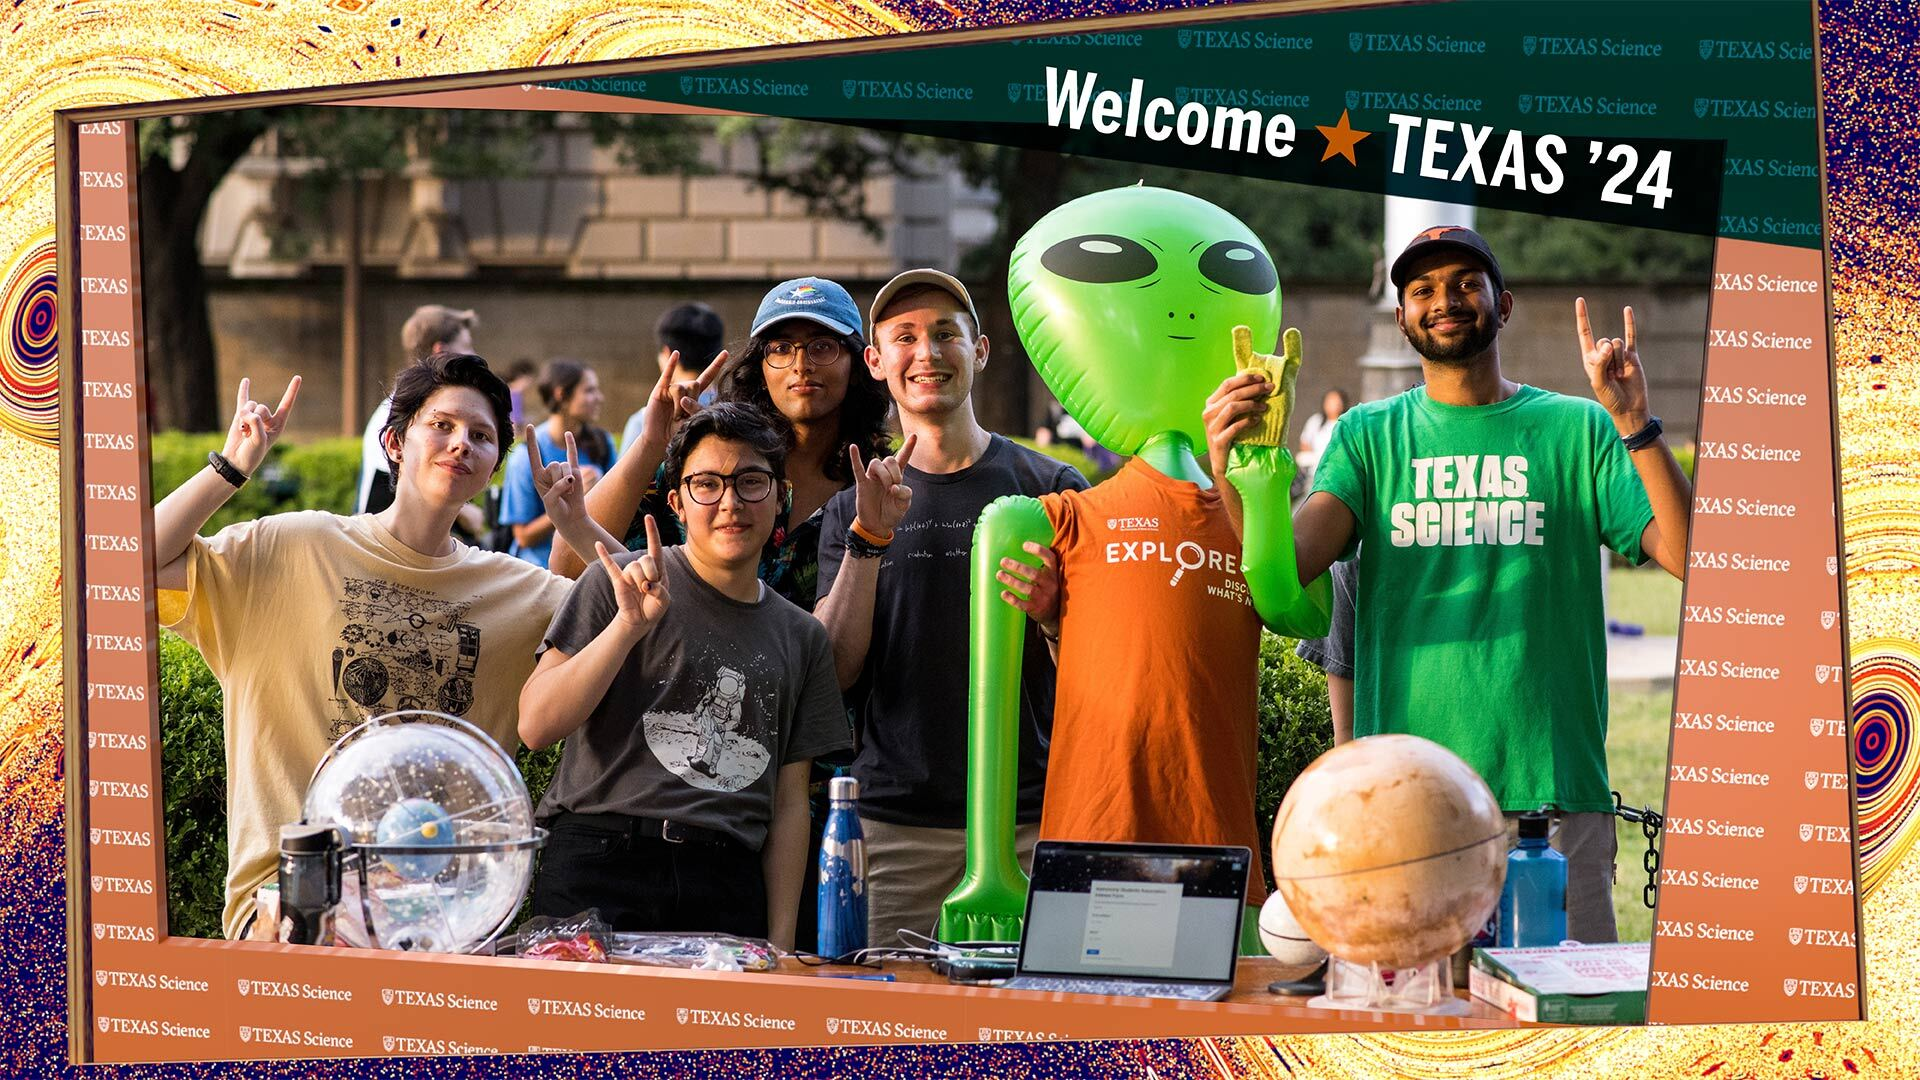 Diverse UT Texas Science students smiling at the camera